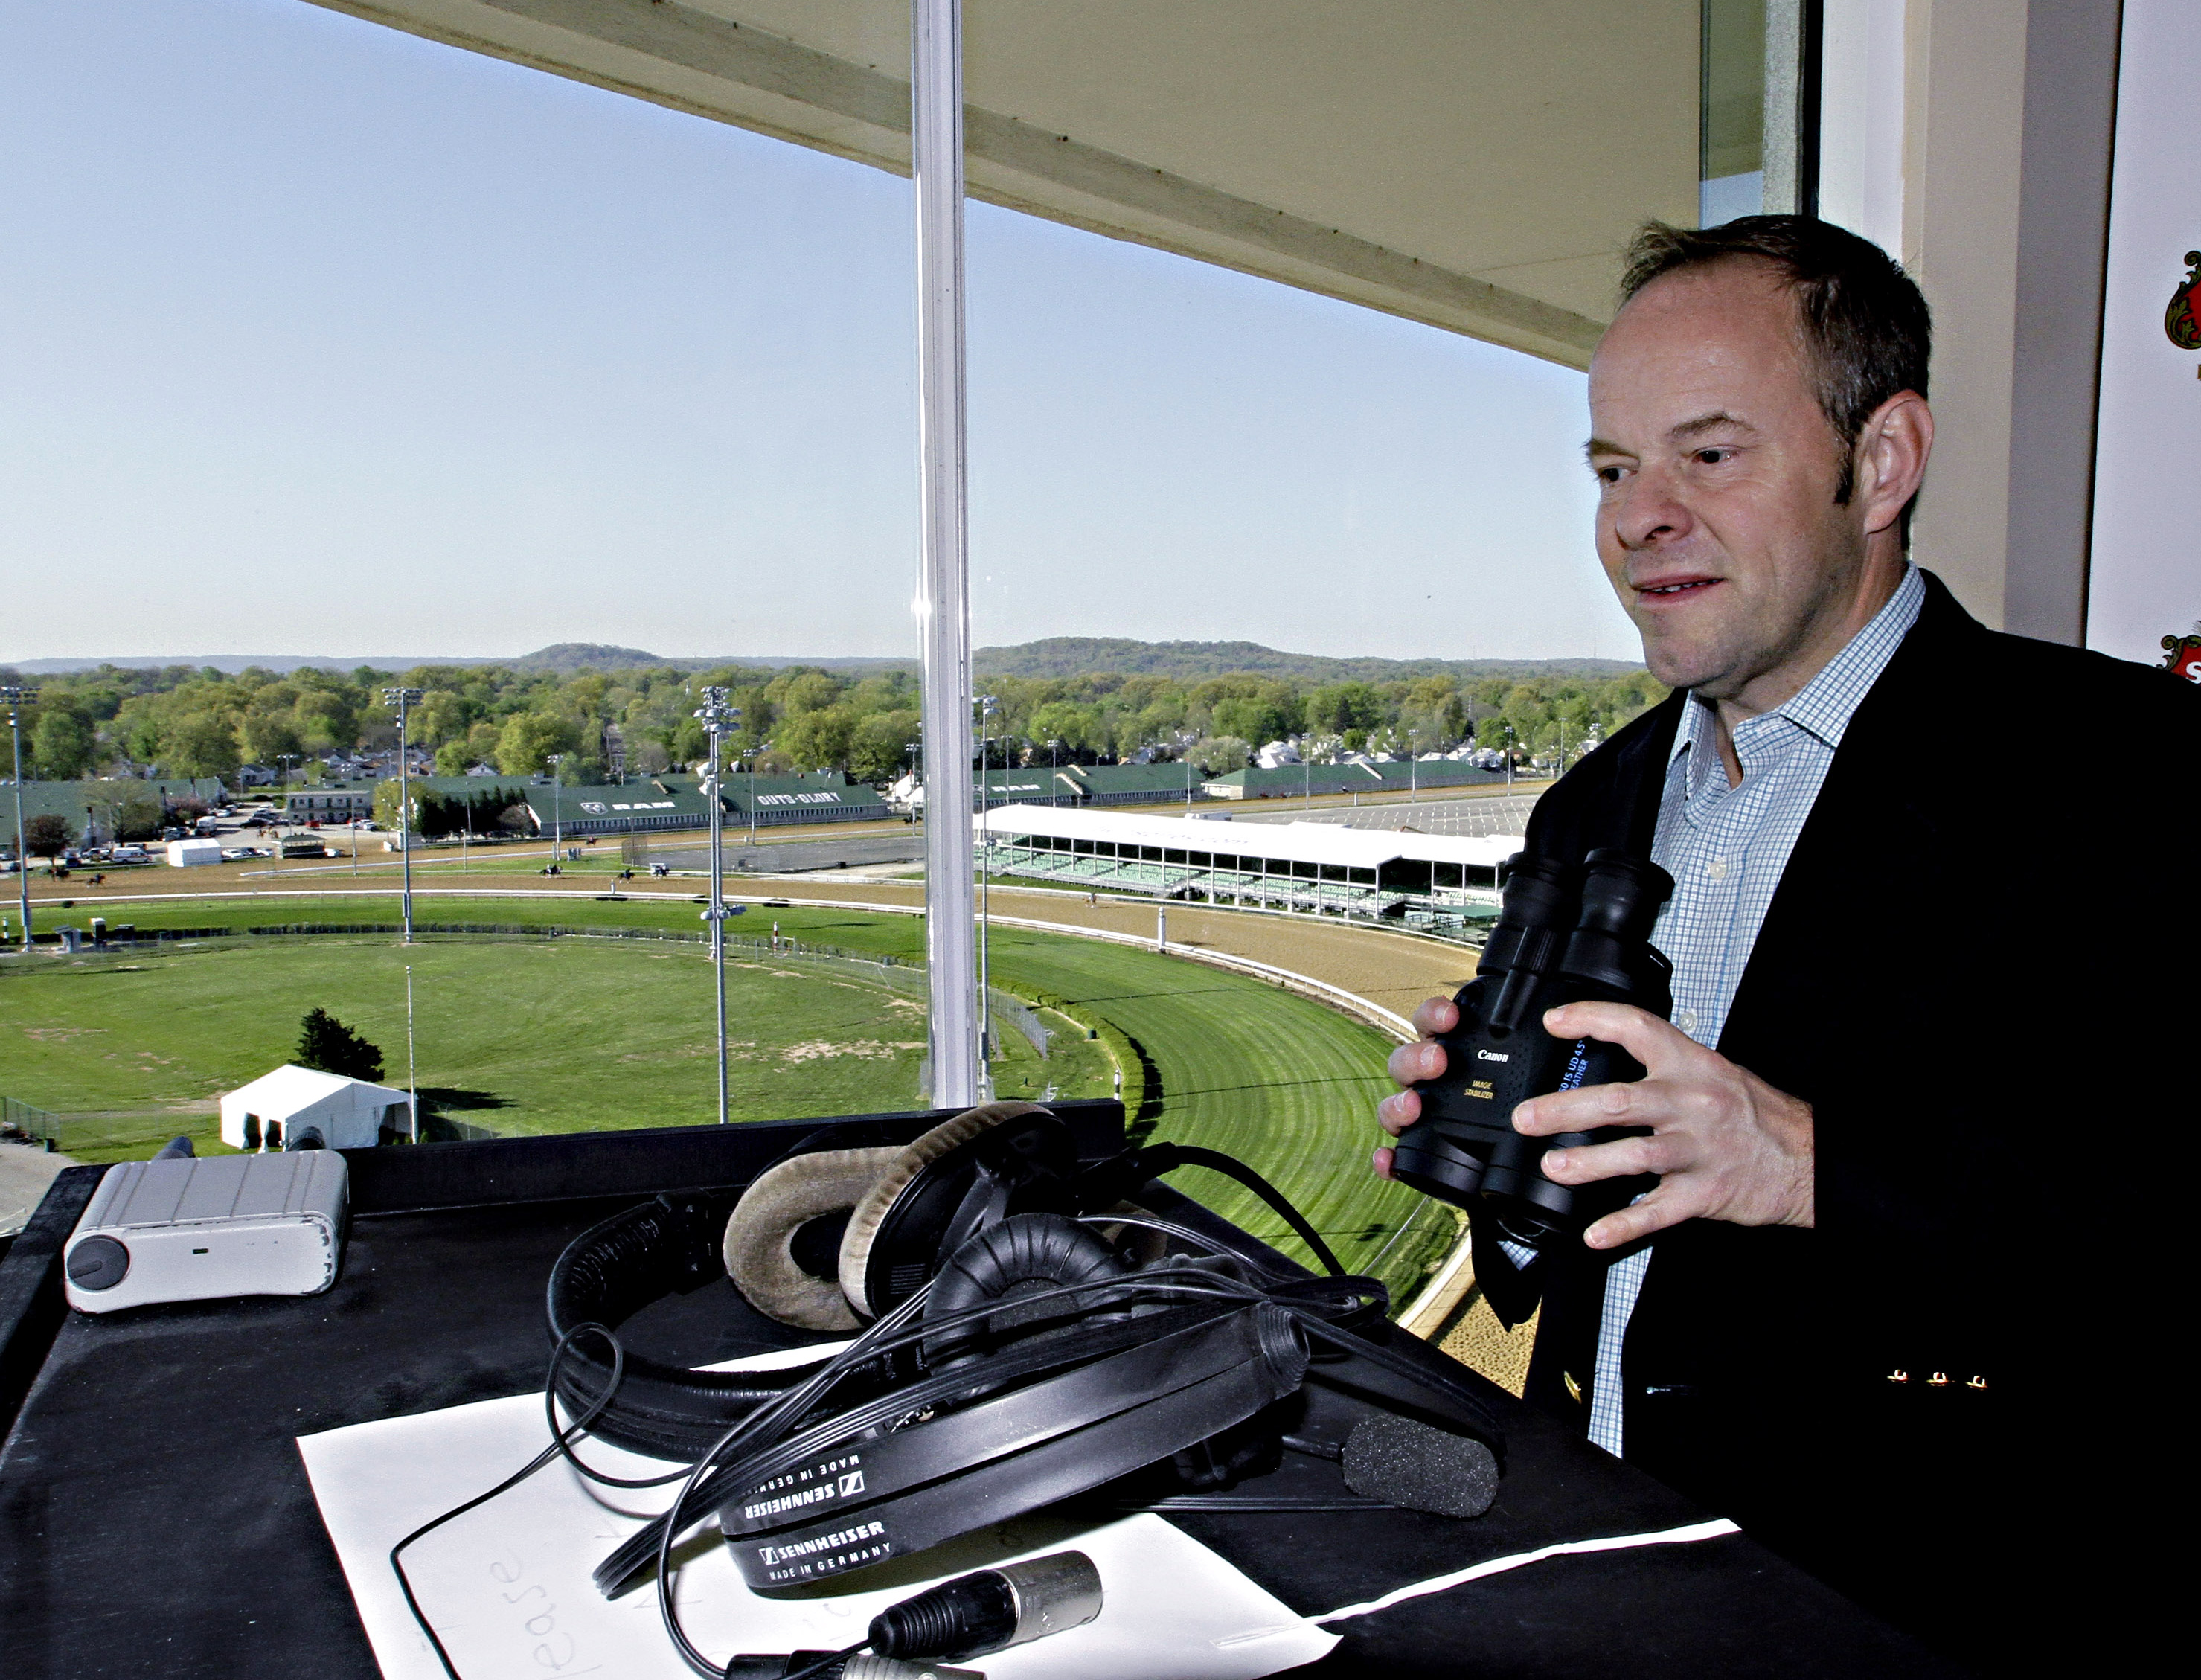 FILE - In this April 23, 2014 file photo, track announcer Larry Collmus looks out from his booth atop the grandstand at Churchill Downs in Louisville, Ky.  Collmus has signed a five-year contract extension with NBC Sports to remain the voice of the Triple